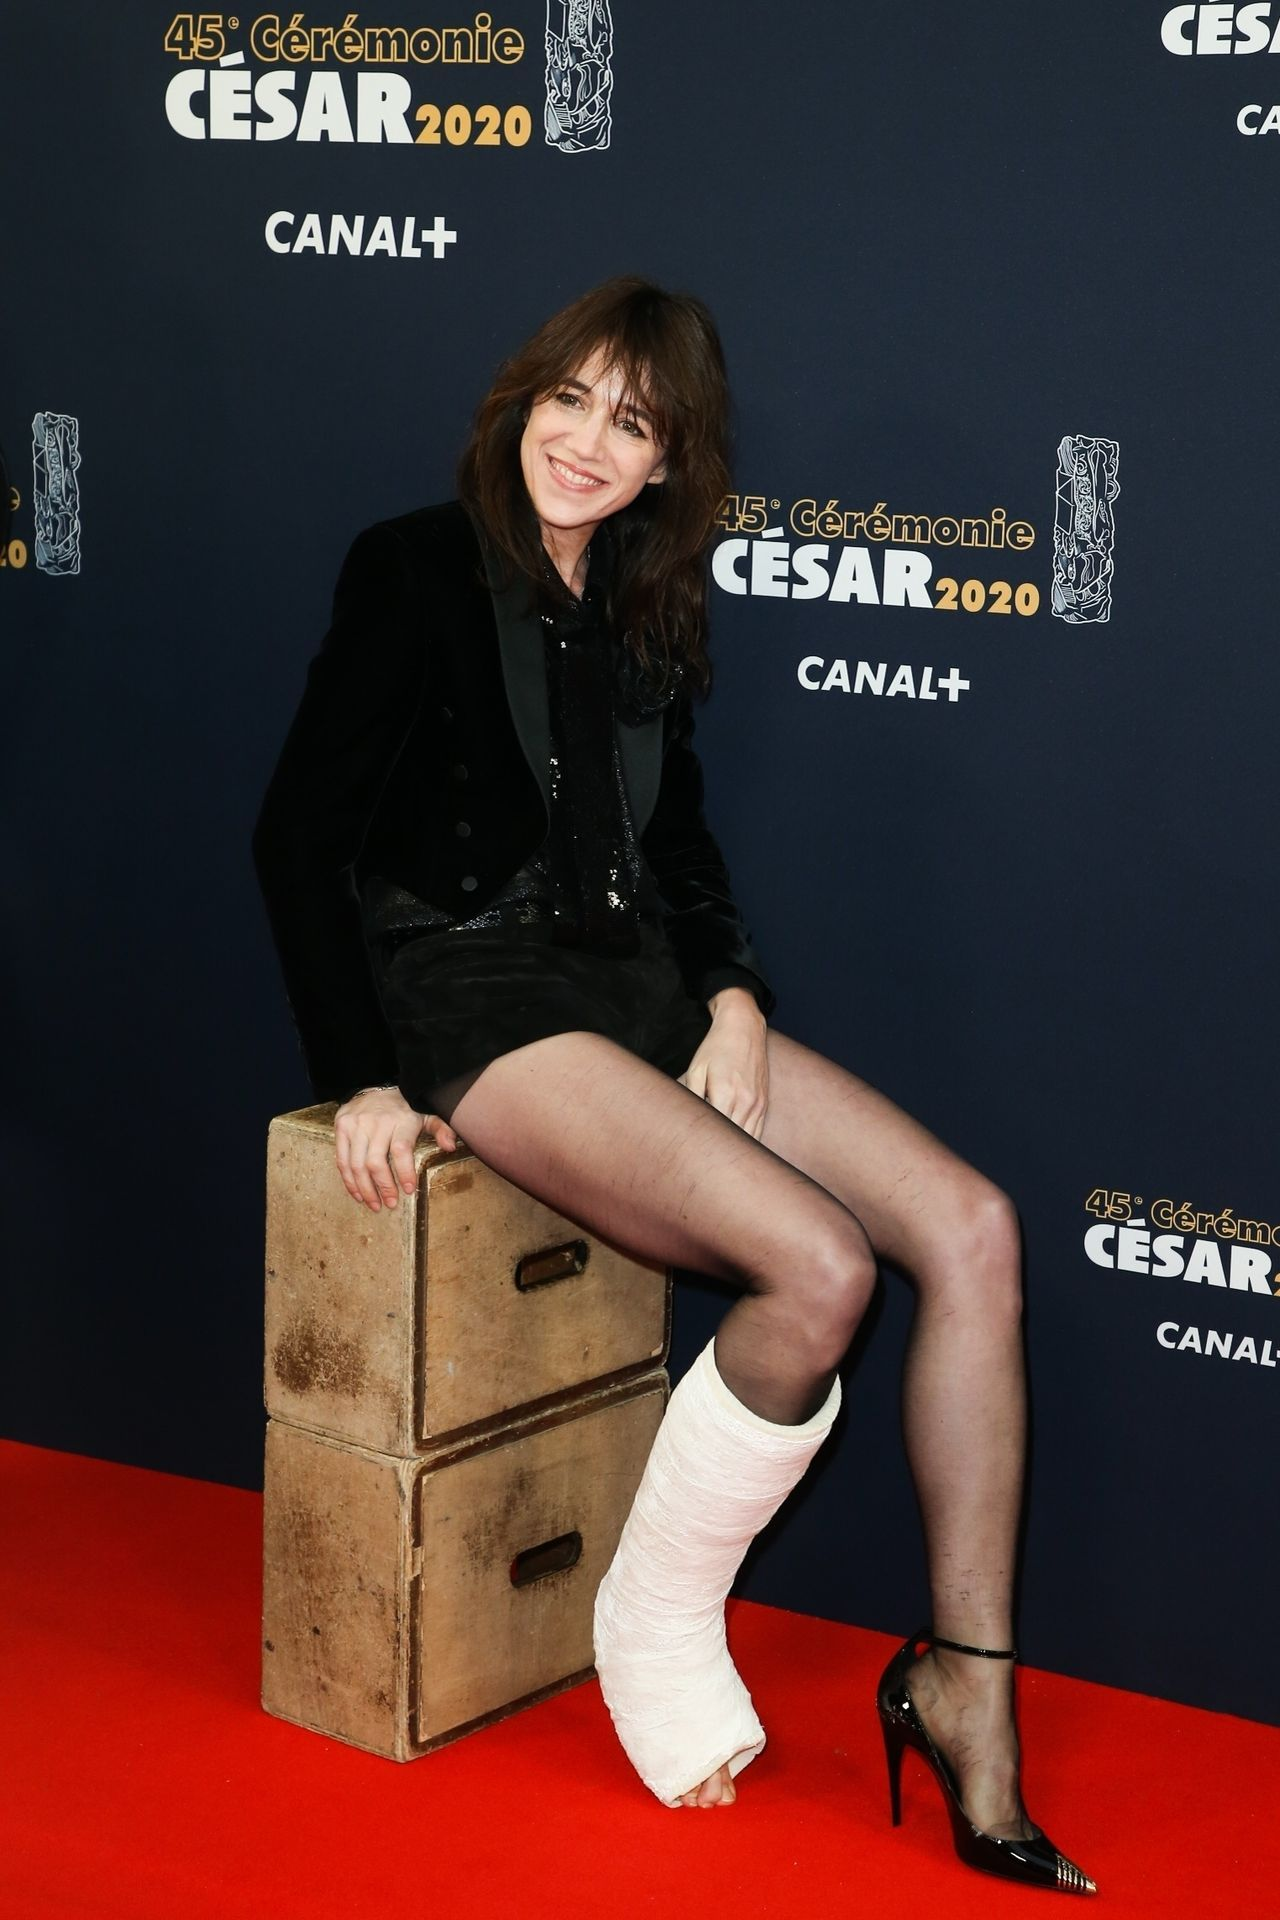 La Vita Promessa Photocall in Rome: Demetra Bellina (5 Photos)